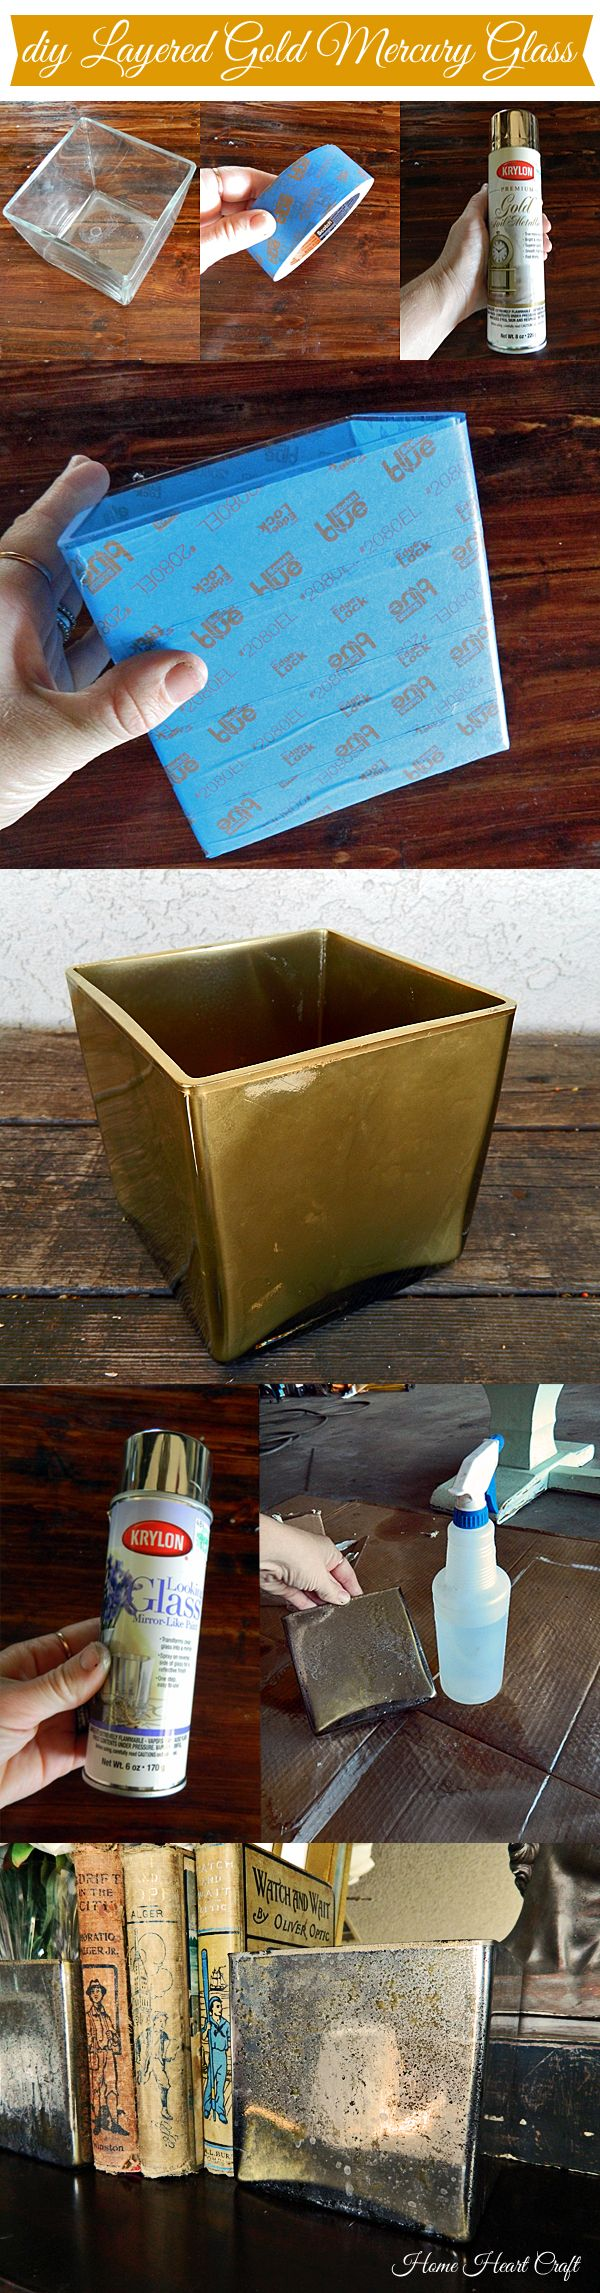 DIY Gold Mercury Glass. We all know how to make silver, now see how to make a gold tinted version in two simple steps!